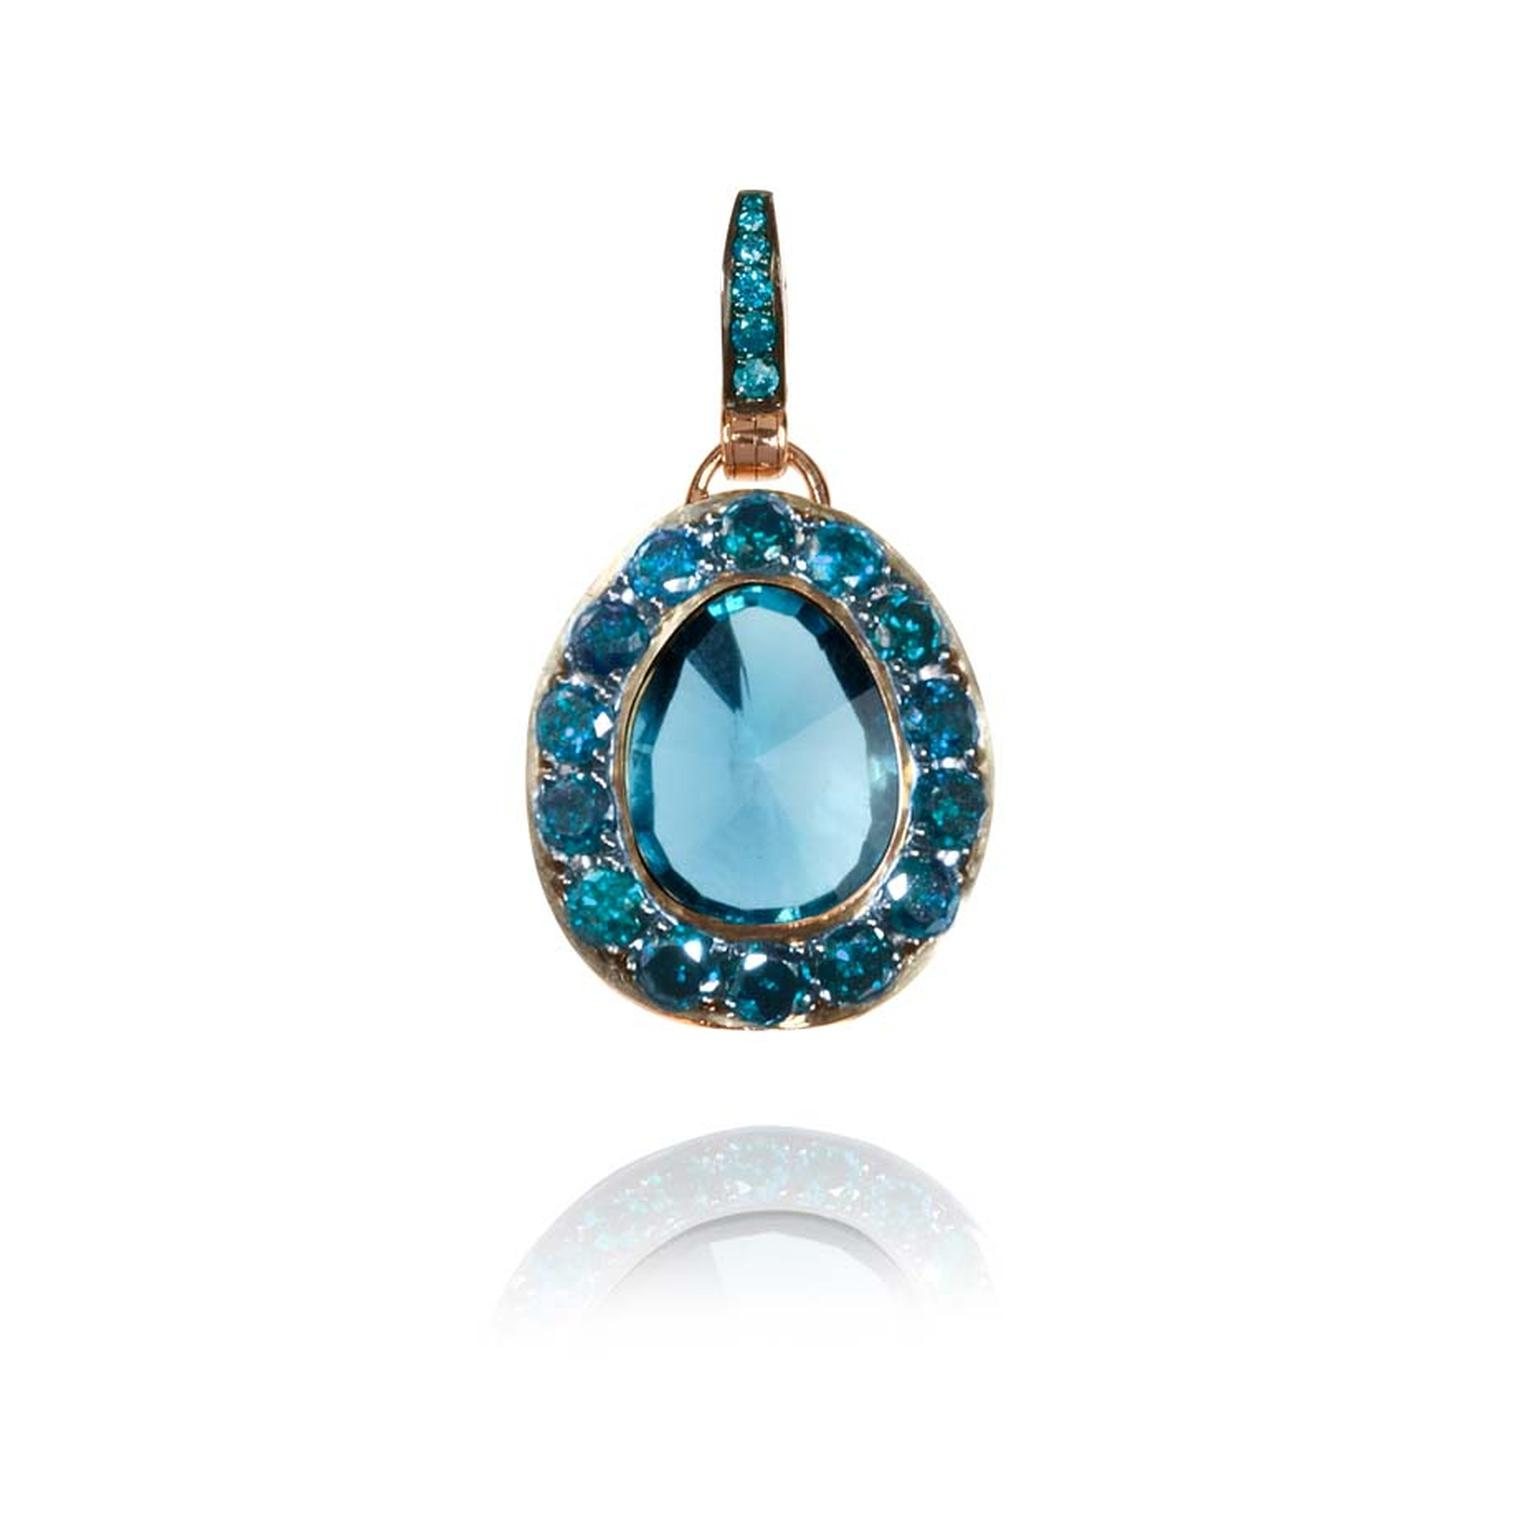 Dusty Diamonds rose gold pendant with blue diamonds and a centre London blue topaz.